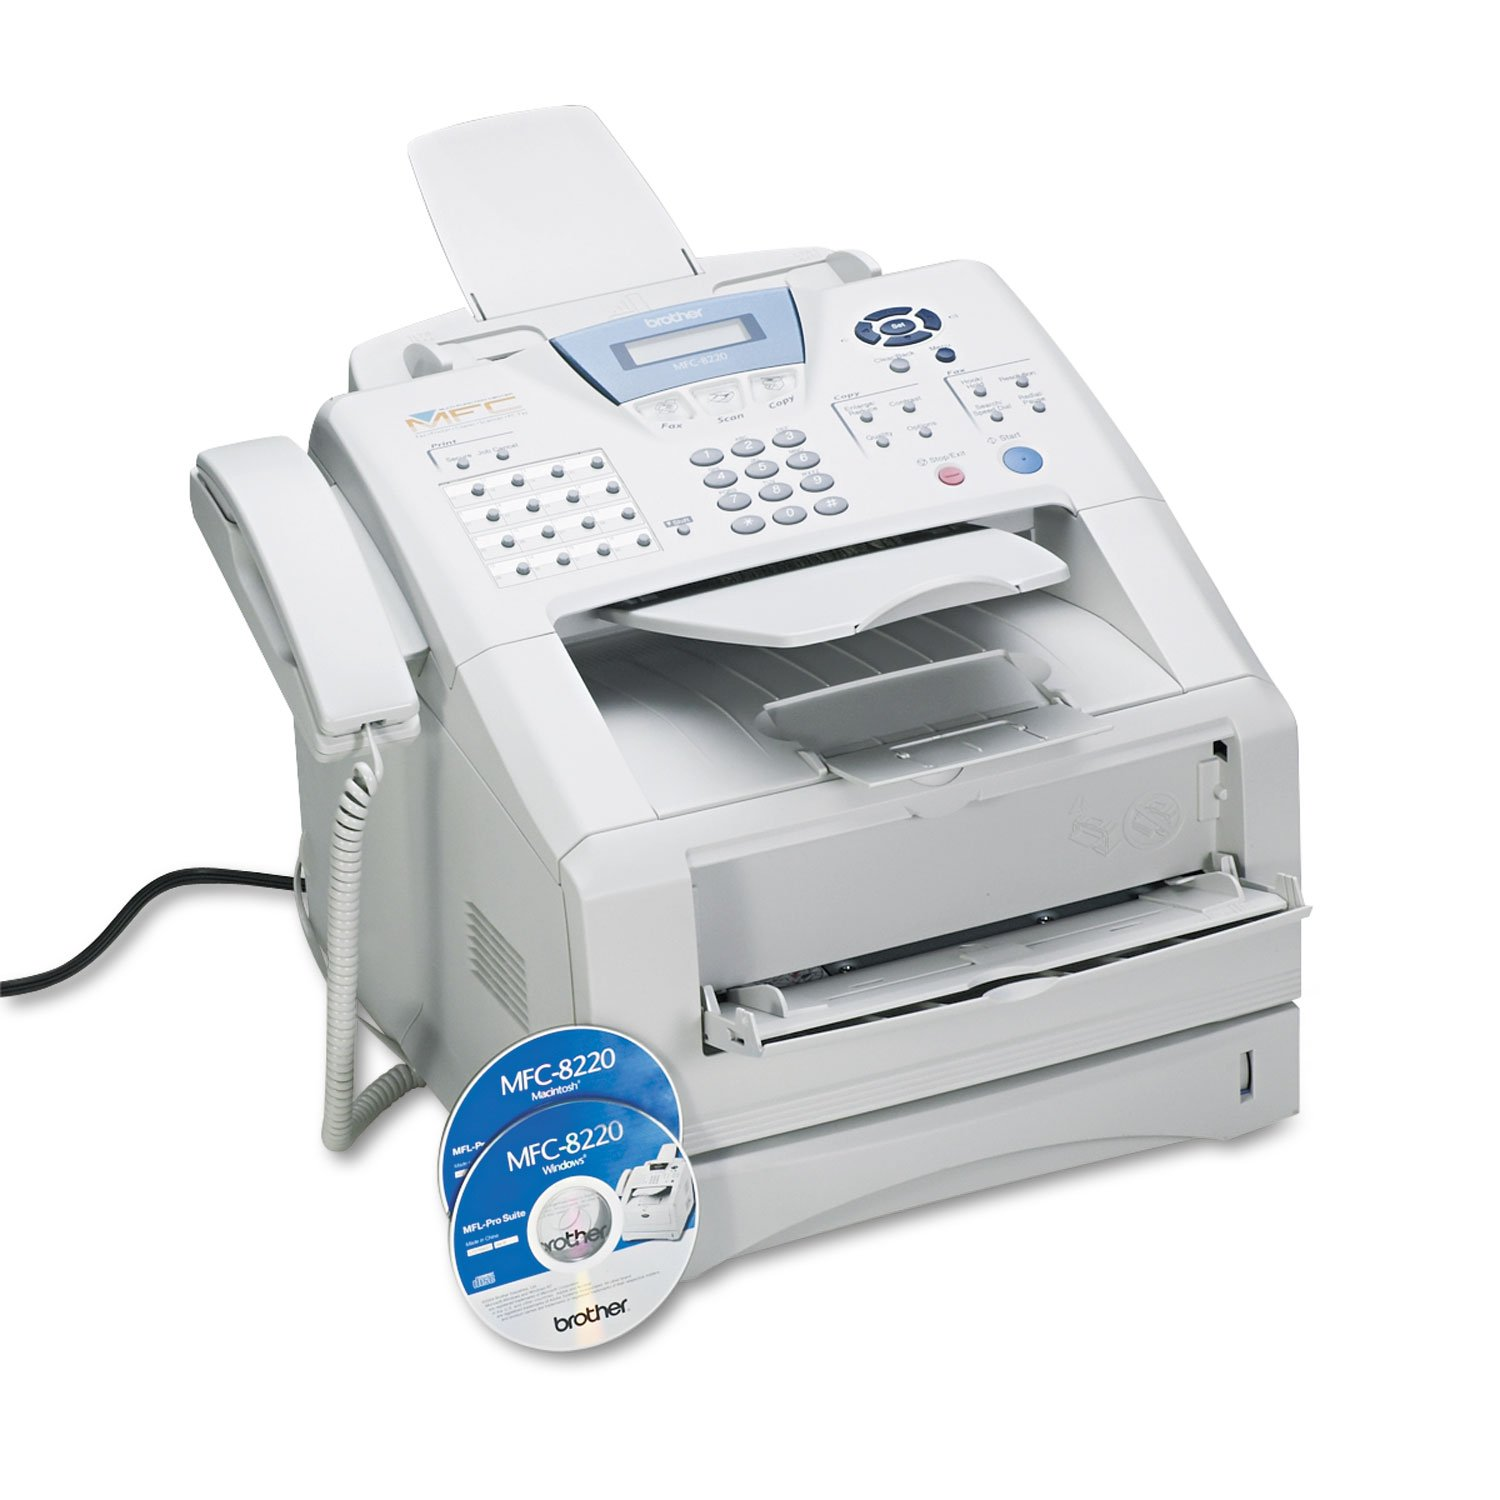 Brother MFC8220 Business Laser All-in-One Printer, Copy/Fax/Print/Scan